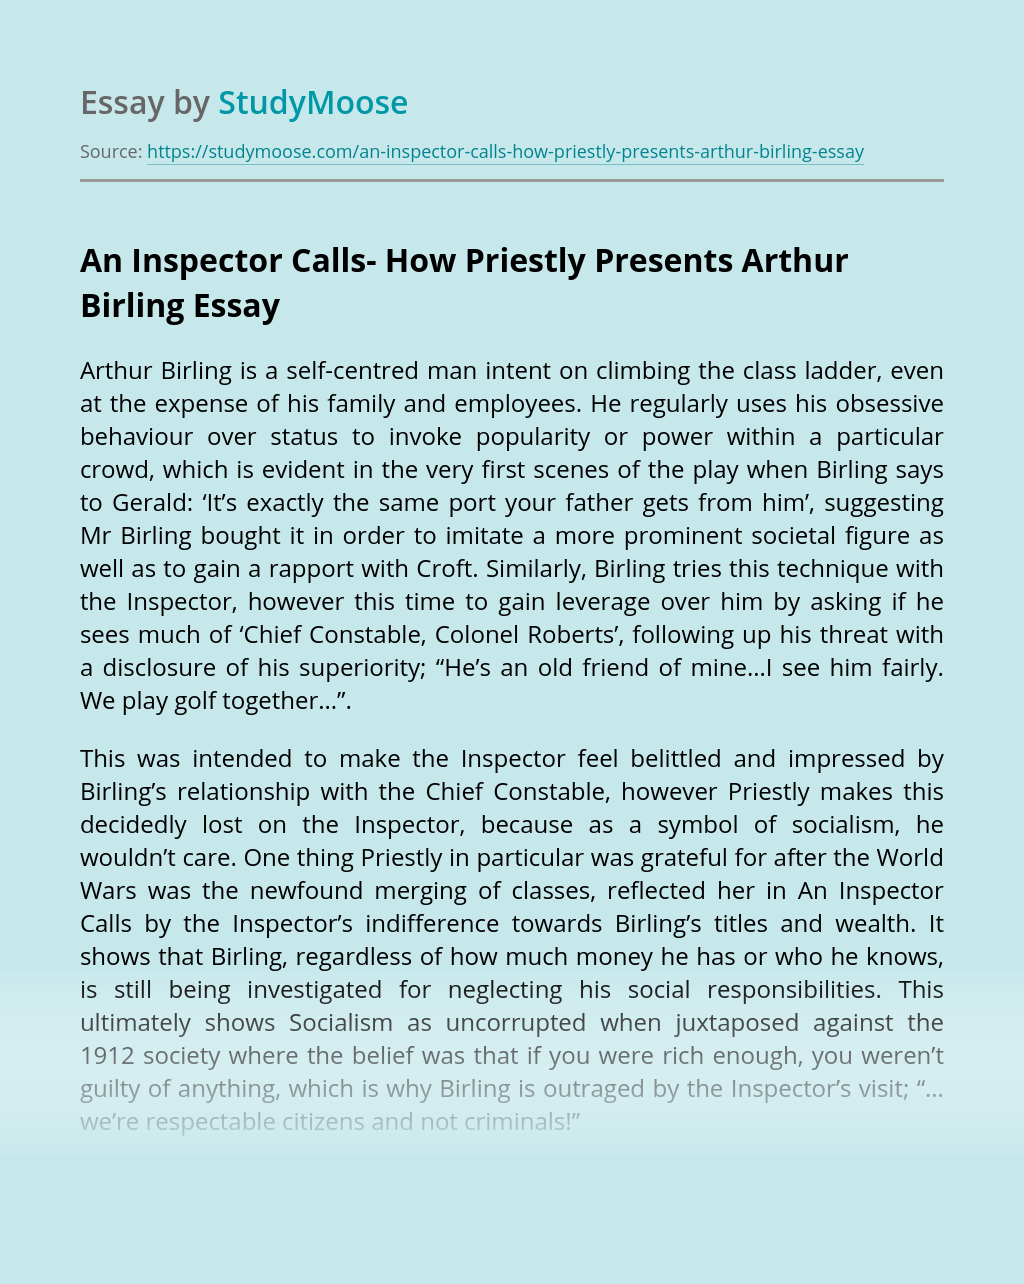 An Inspector Calls- How Priestly Presents Arthur Birling